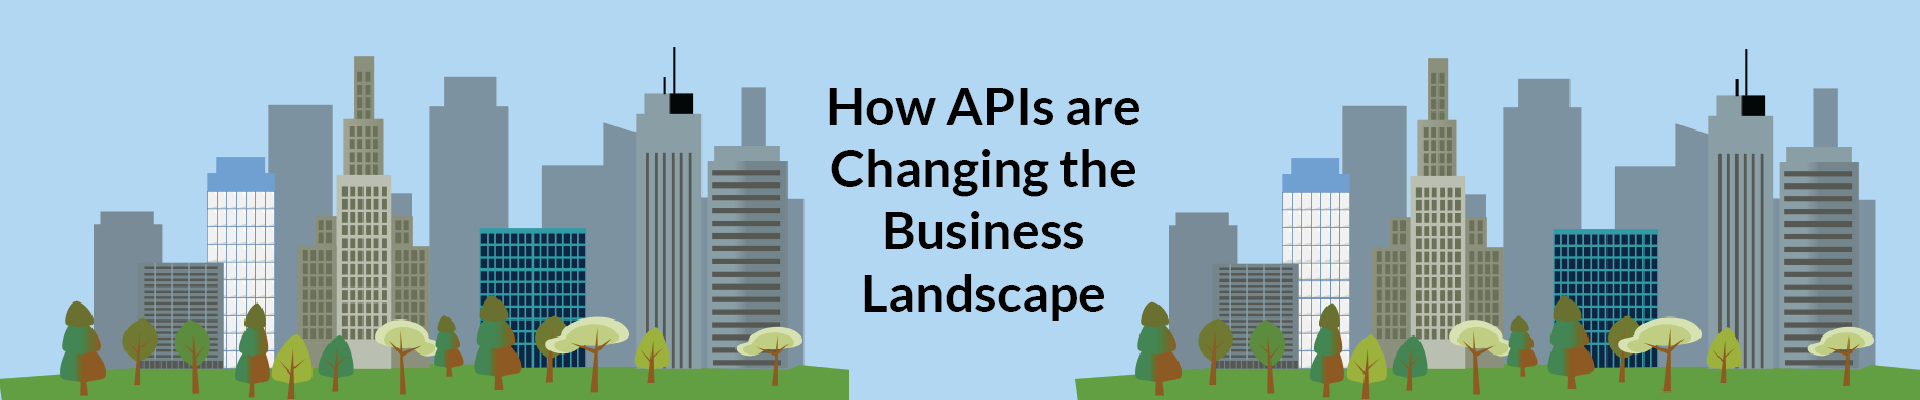 APIs are Changing the Business Landscape